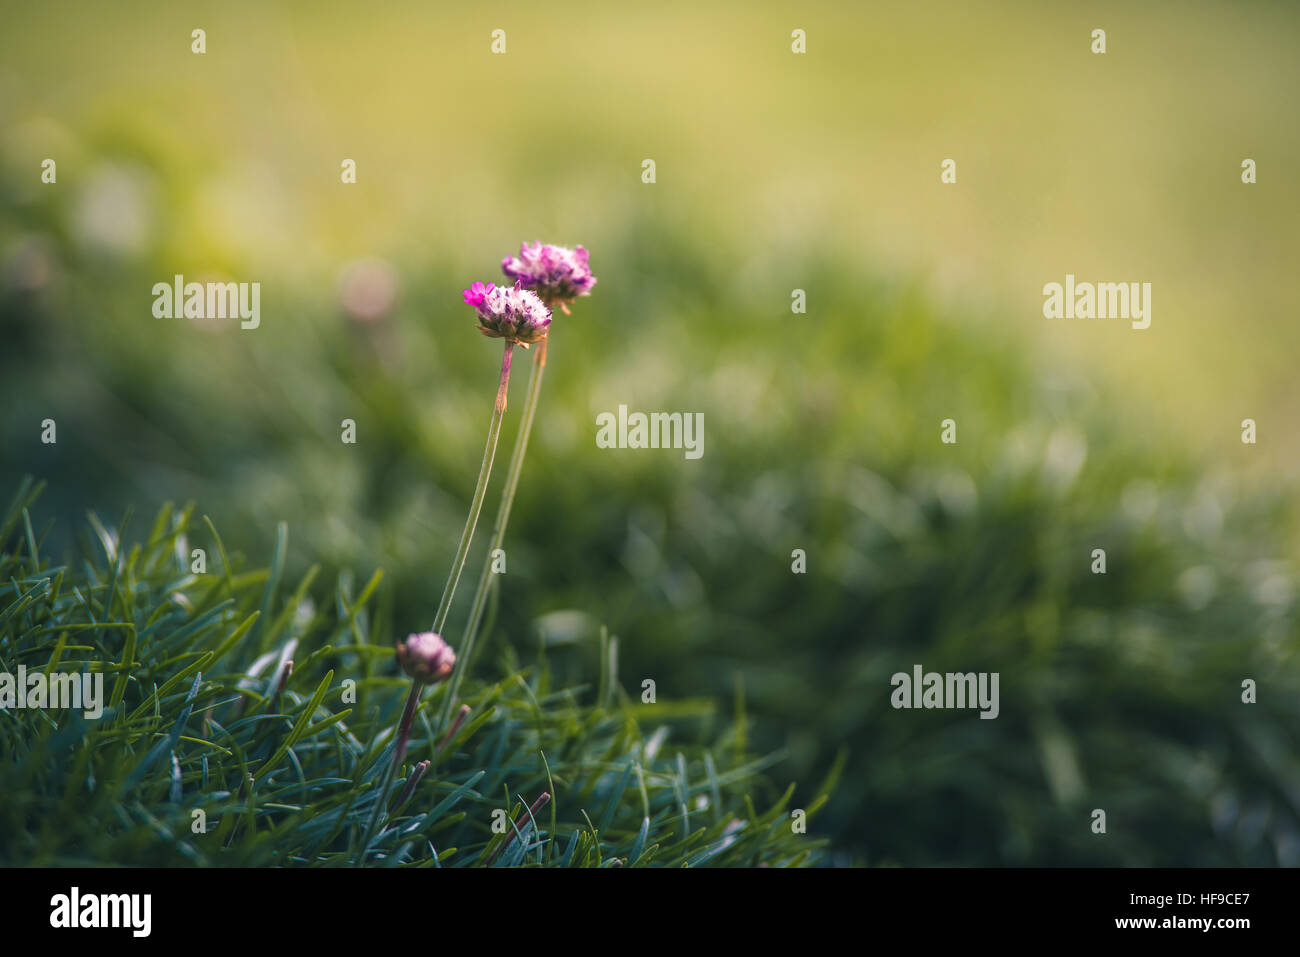 Tiny pink flowers stock photos tiny pink flowers stock images alamy tiny pink flowers in a garden stock image mightylinksfo Gallery